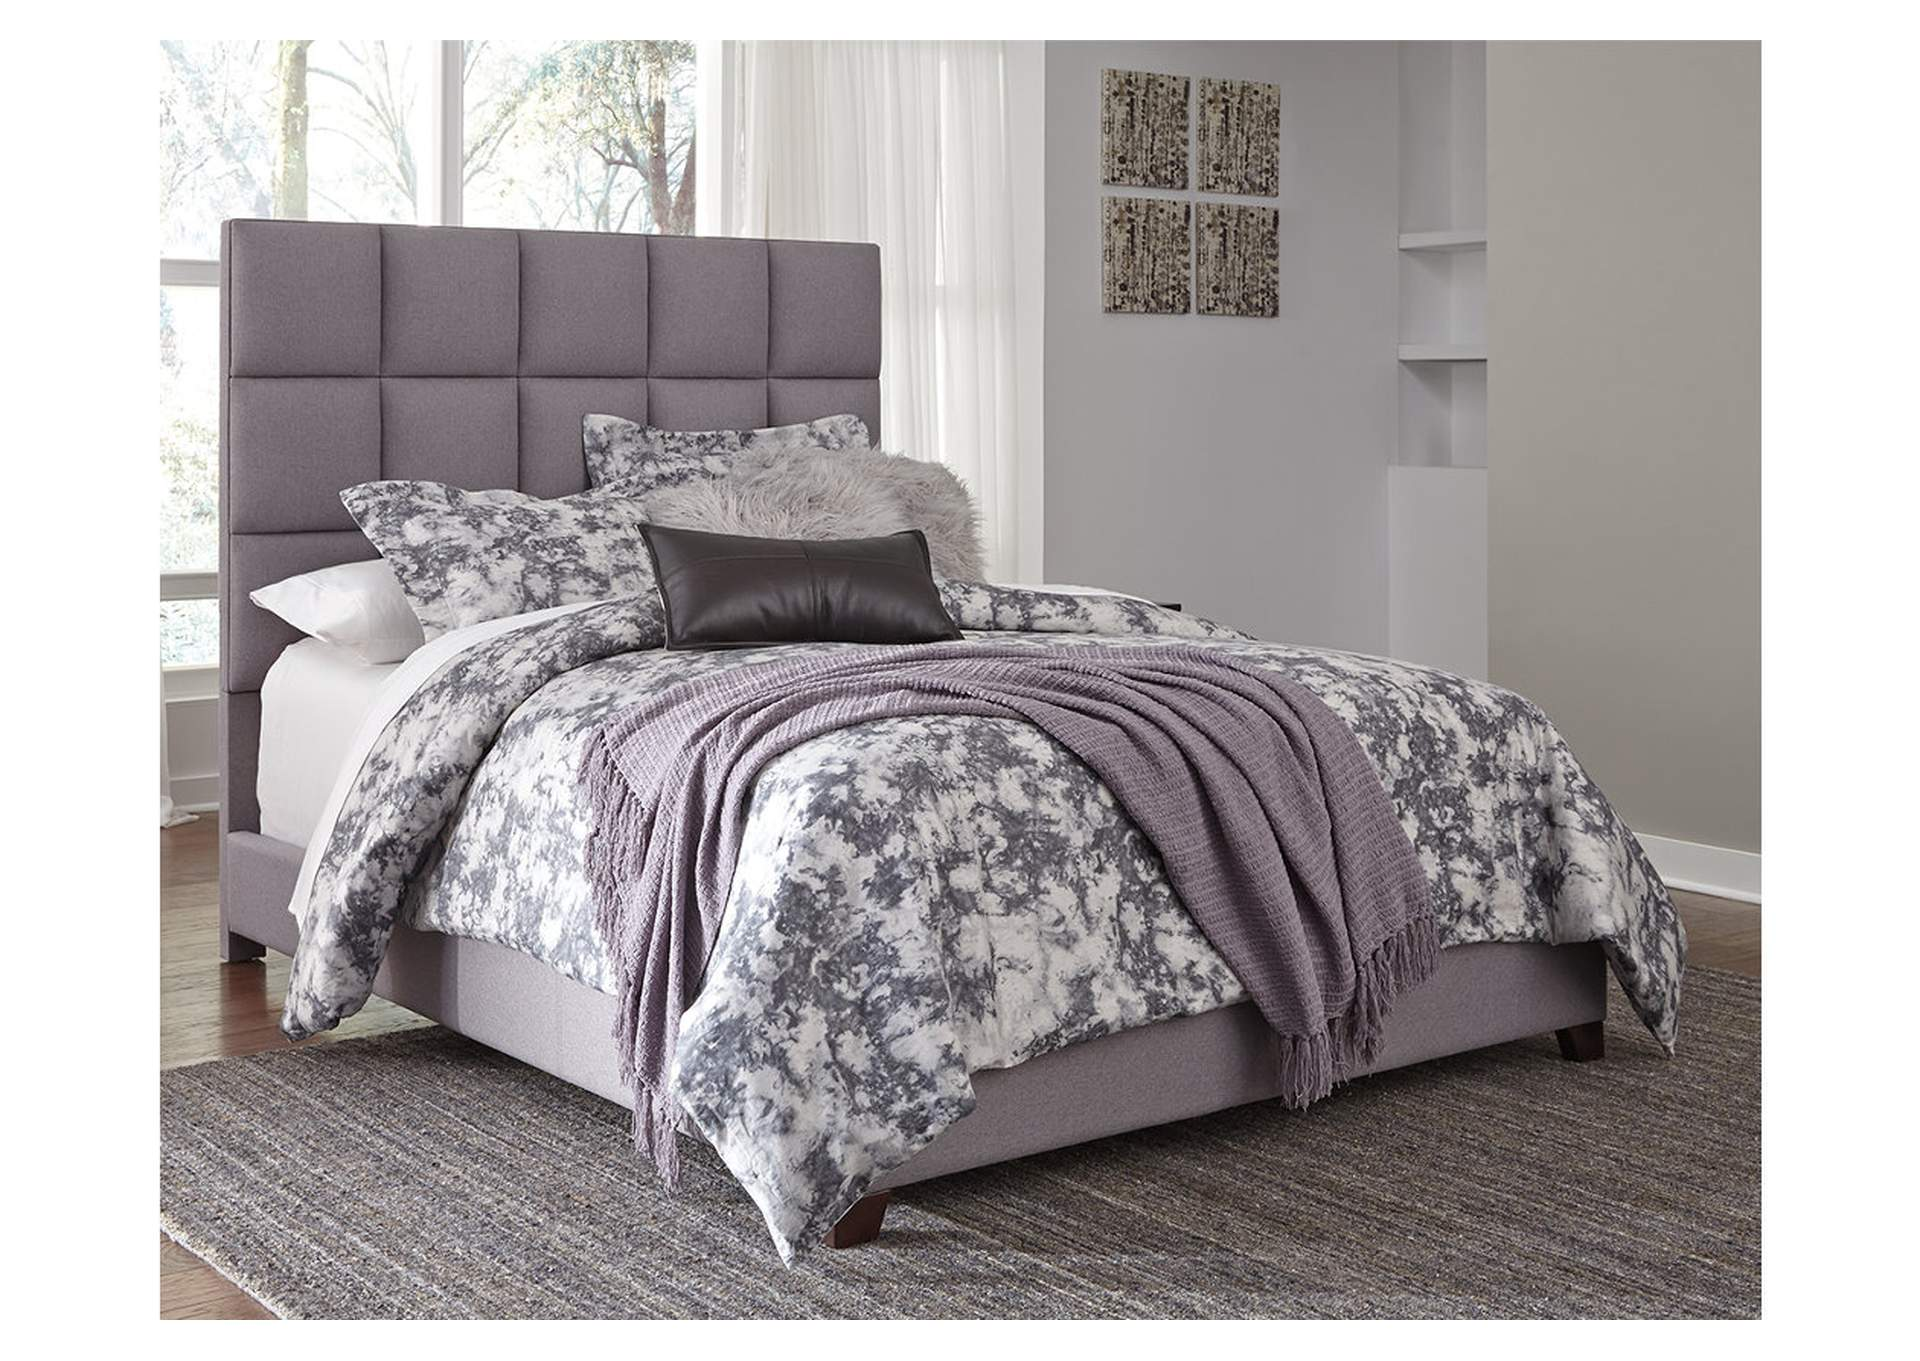 Dolante Gray Queen Upholstered Bed,Signature Design By Ashley